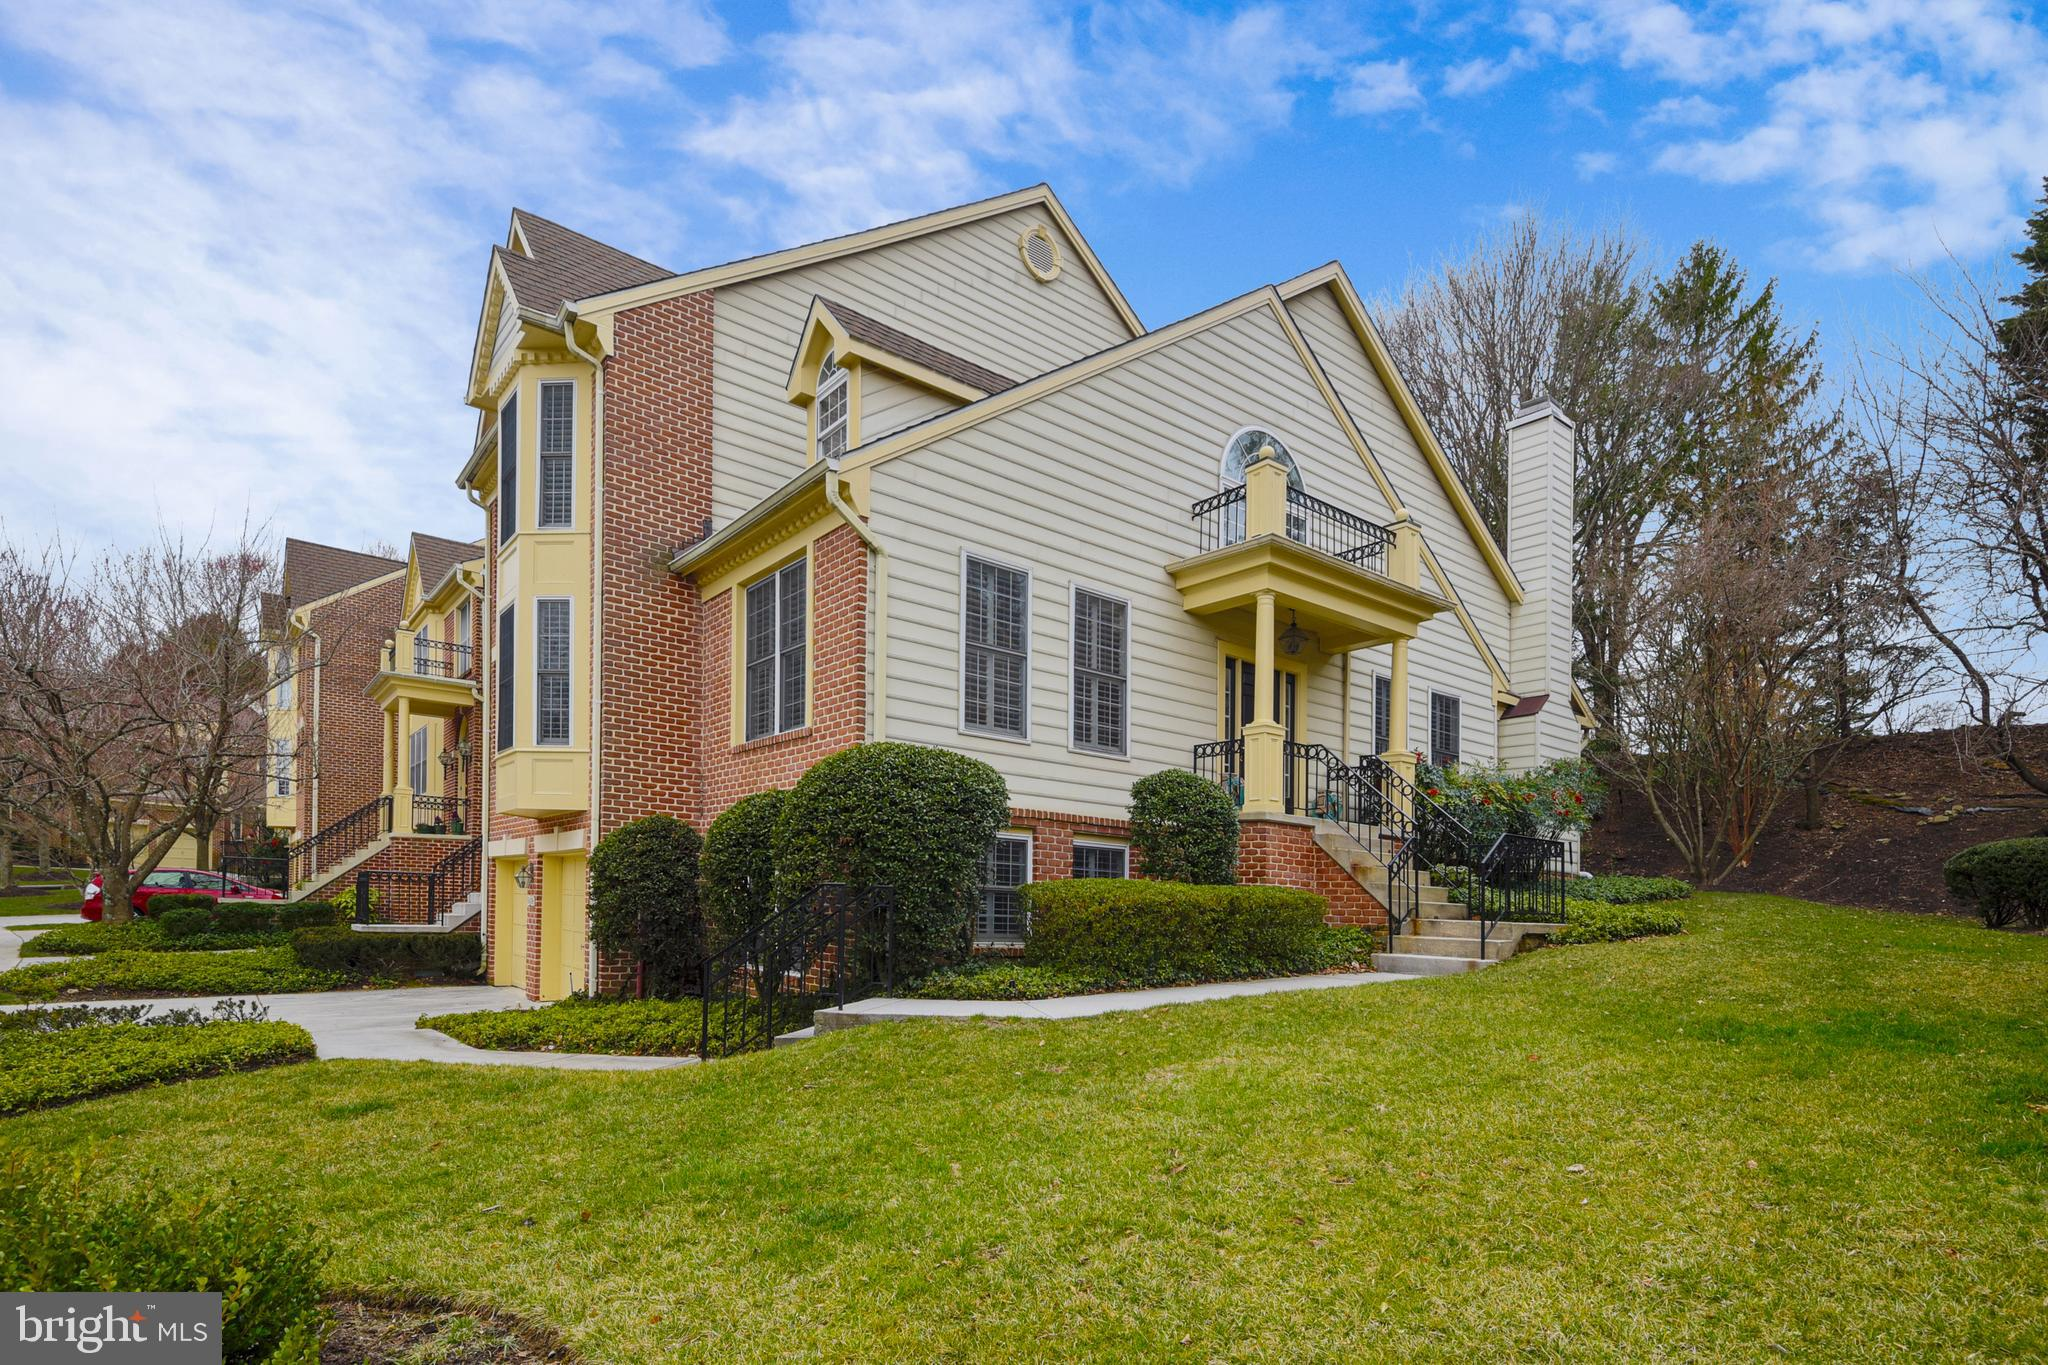 6426 CLOISTER GATE DRIVE, BALTIMORE, MD 21212